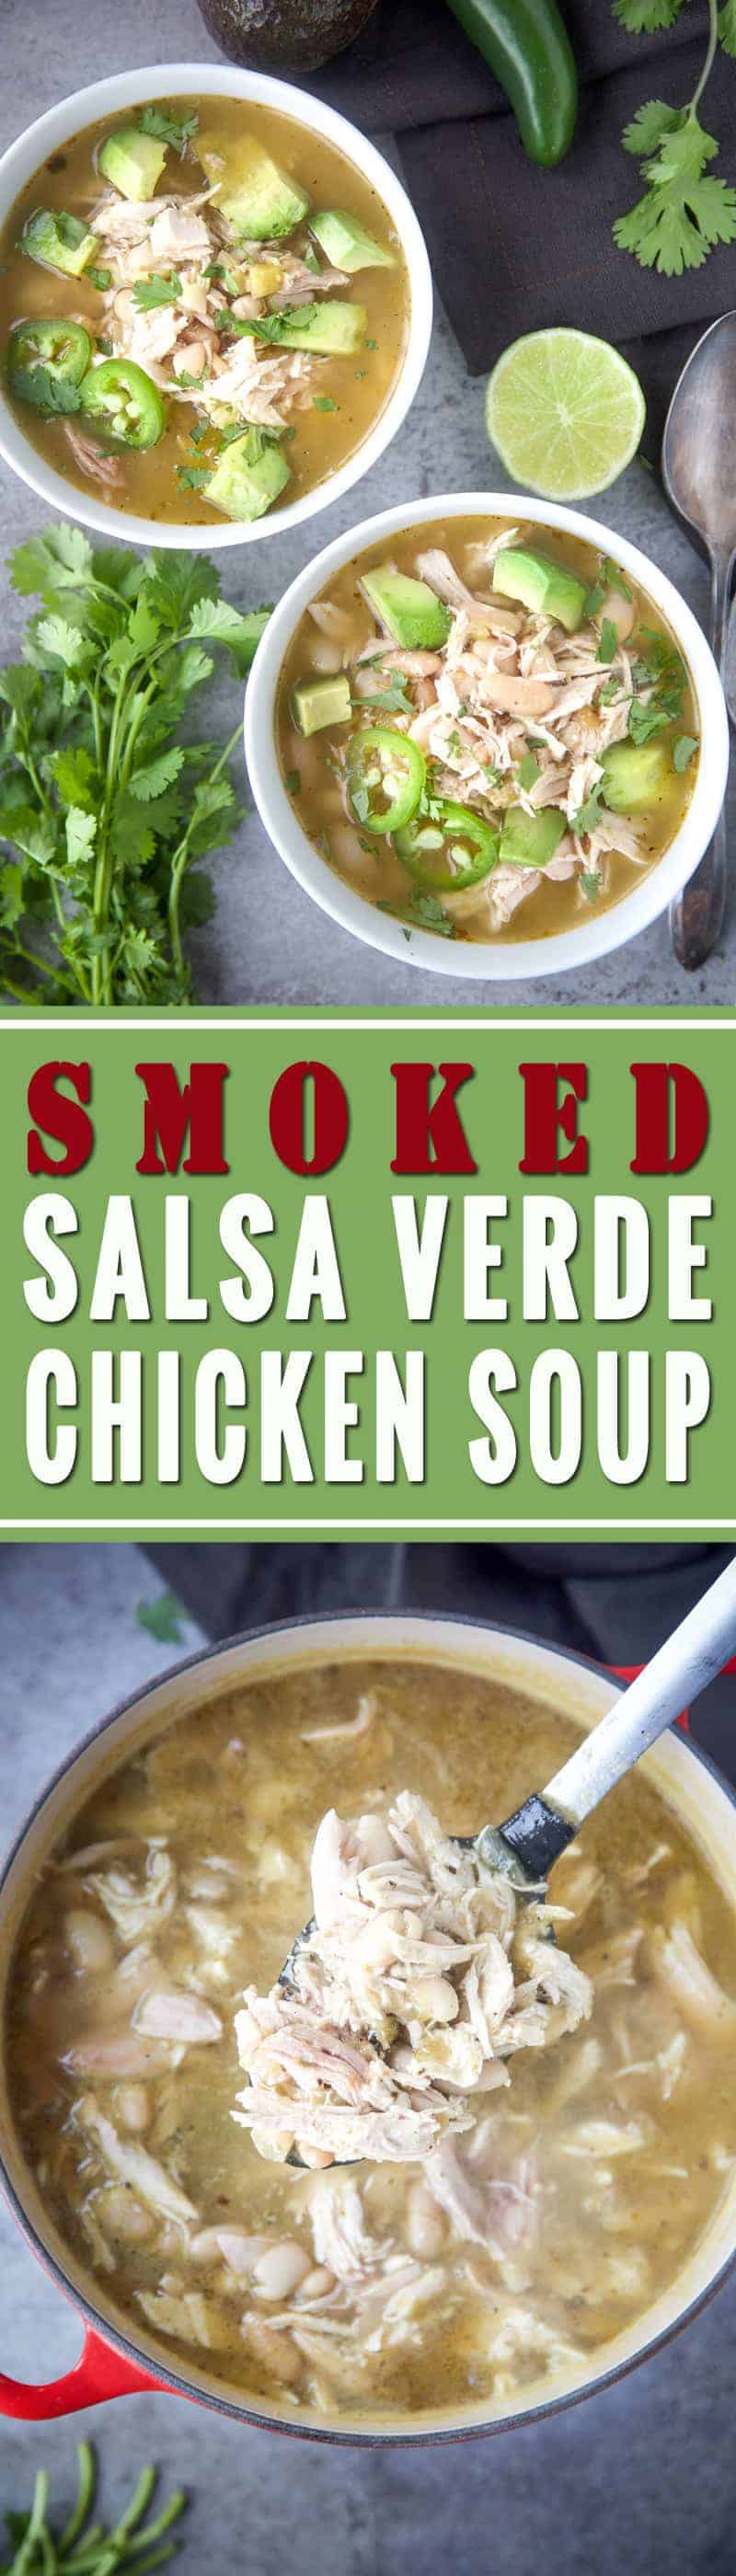 Smoked Salsa Verde Chicken Soup, and 3 easy ways to simplify this soup during cold season!